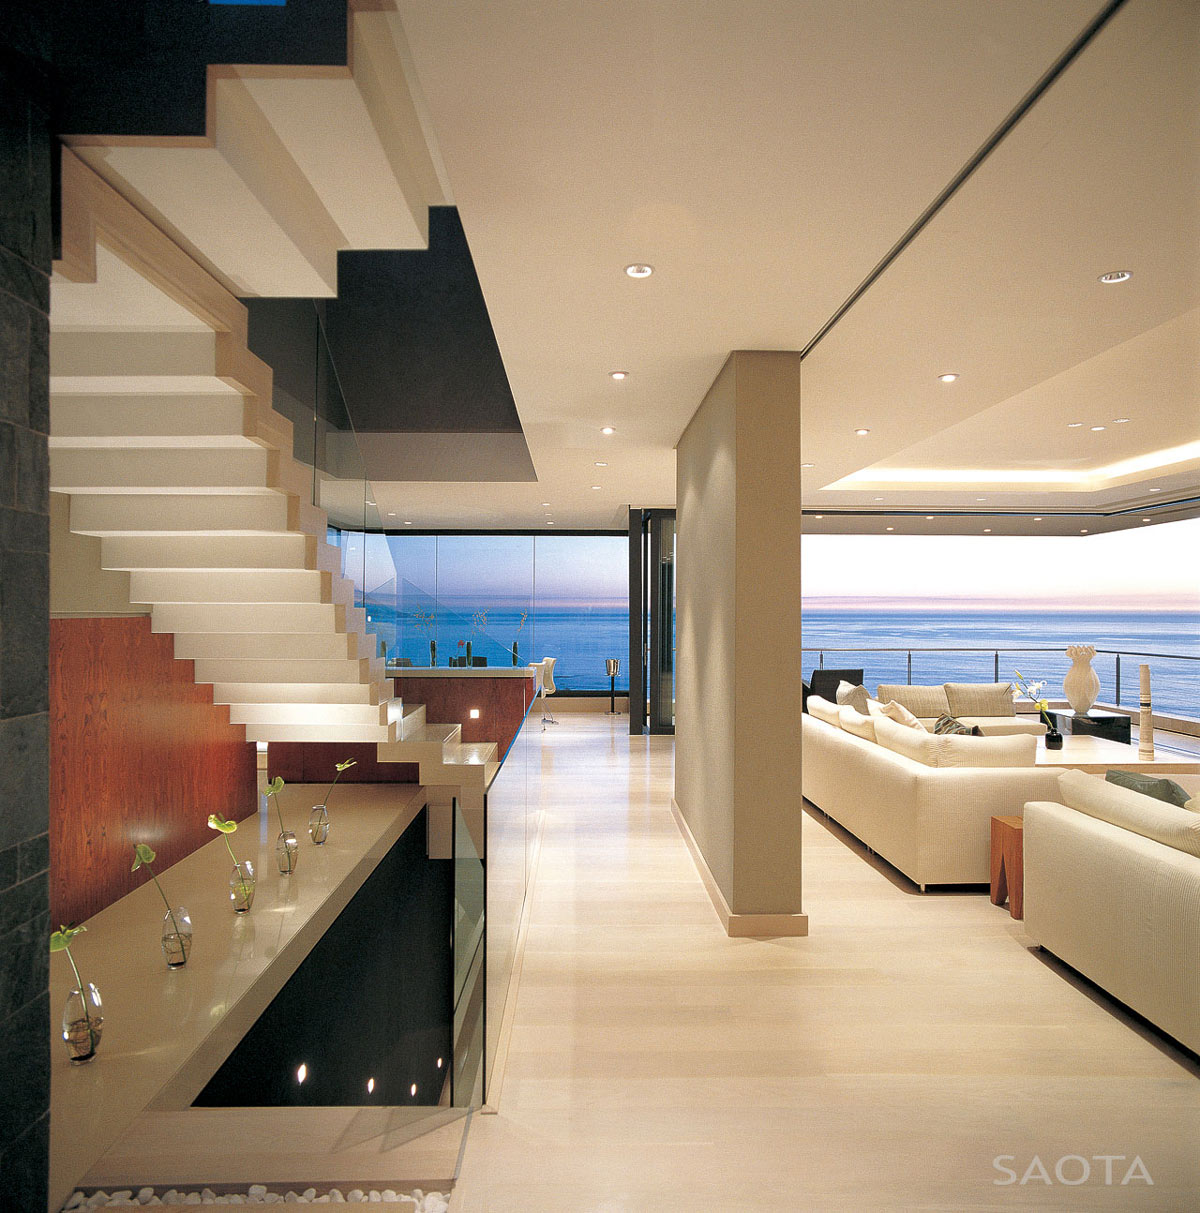 Stairs, Living Space, Ocean Views, St Leon 10 in Cape Town, South Africa by SAOTA and Antoni Associates